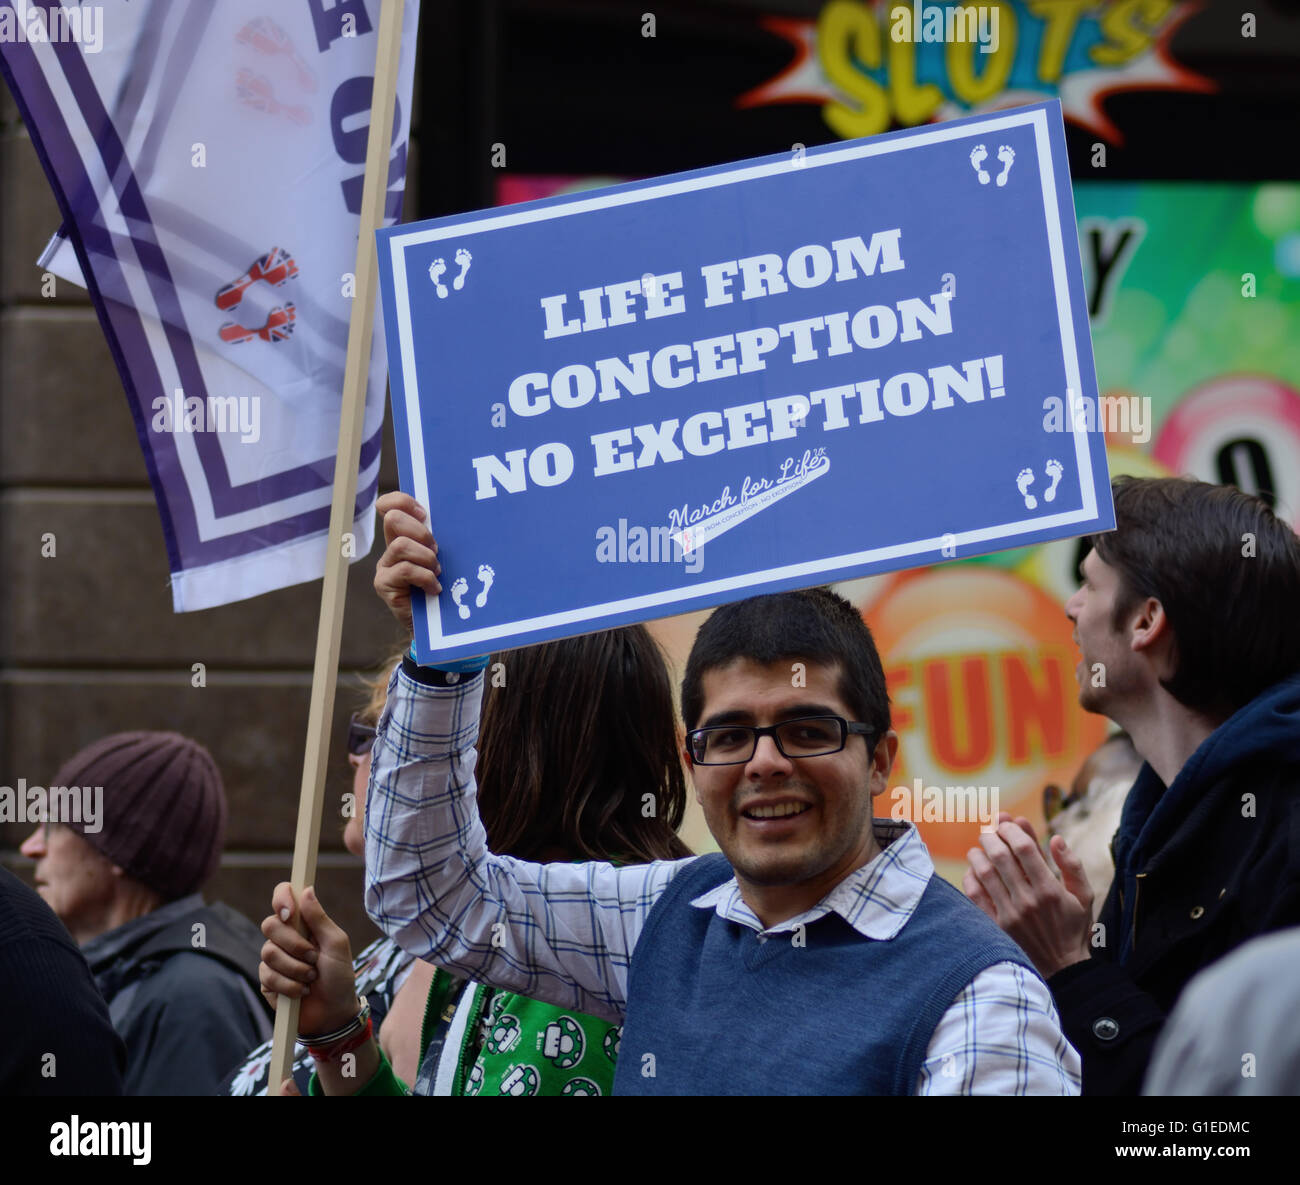 Pro Life rally Birmingham 14th May 2016 - Stock Image